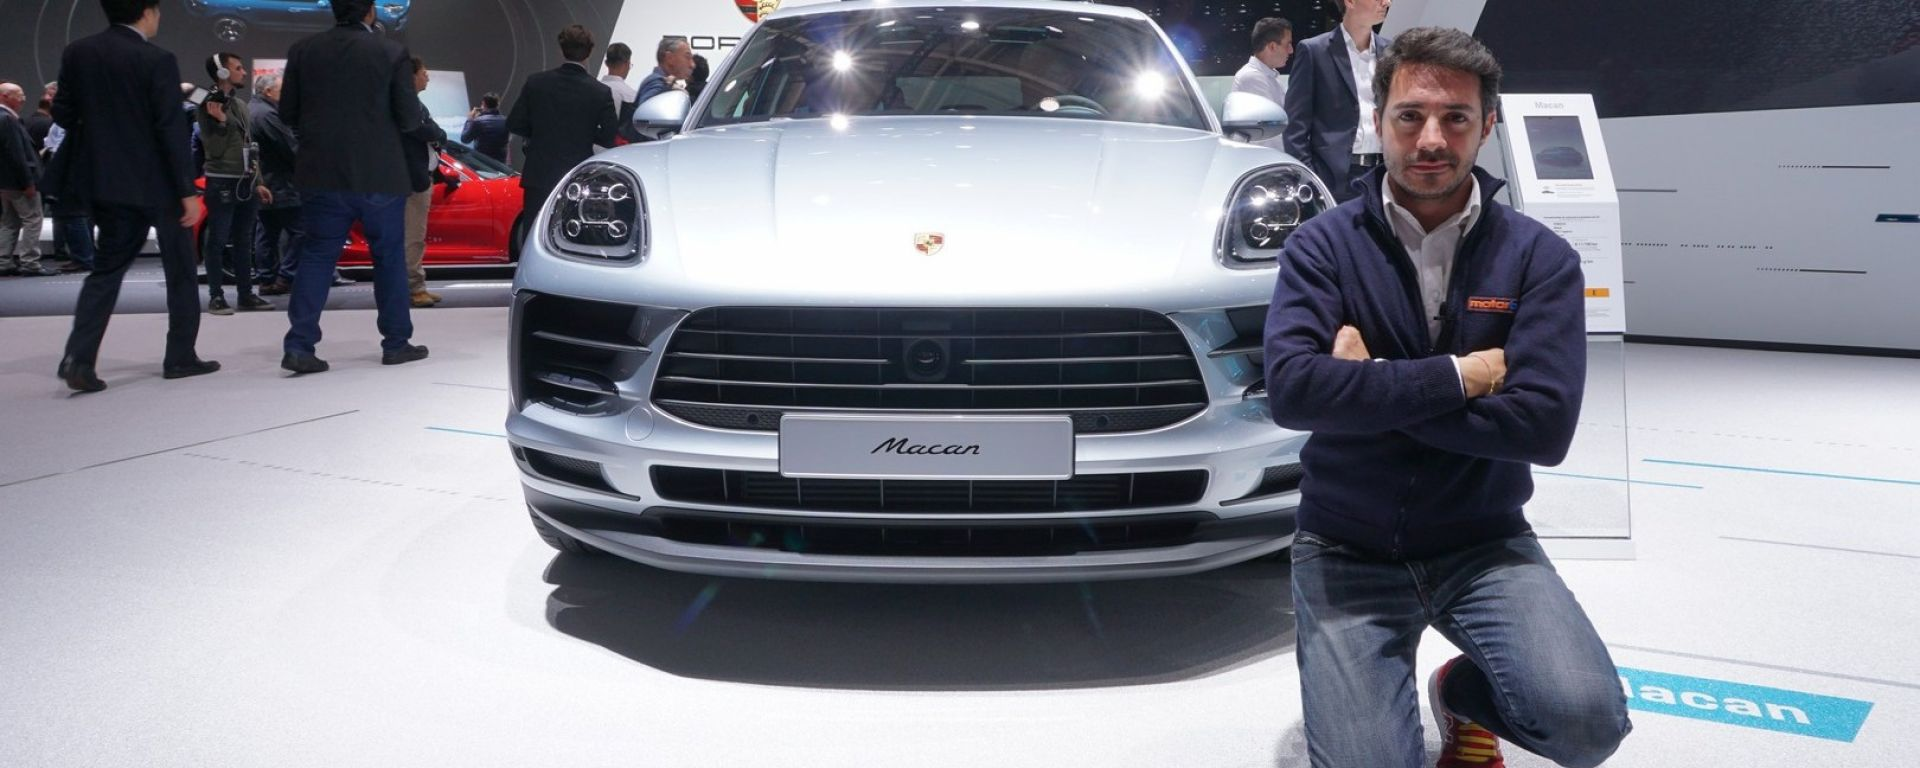 Nuova Porsche Macan 2019 in video da Parigi 2018